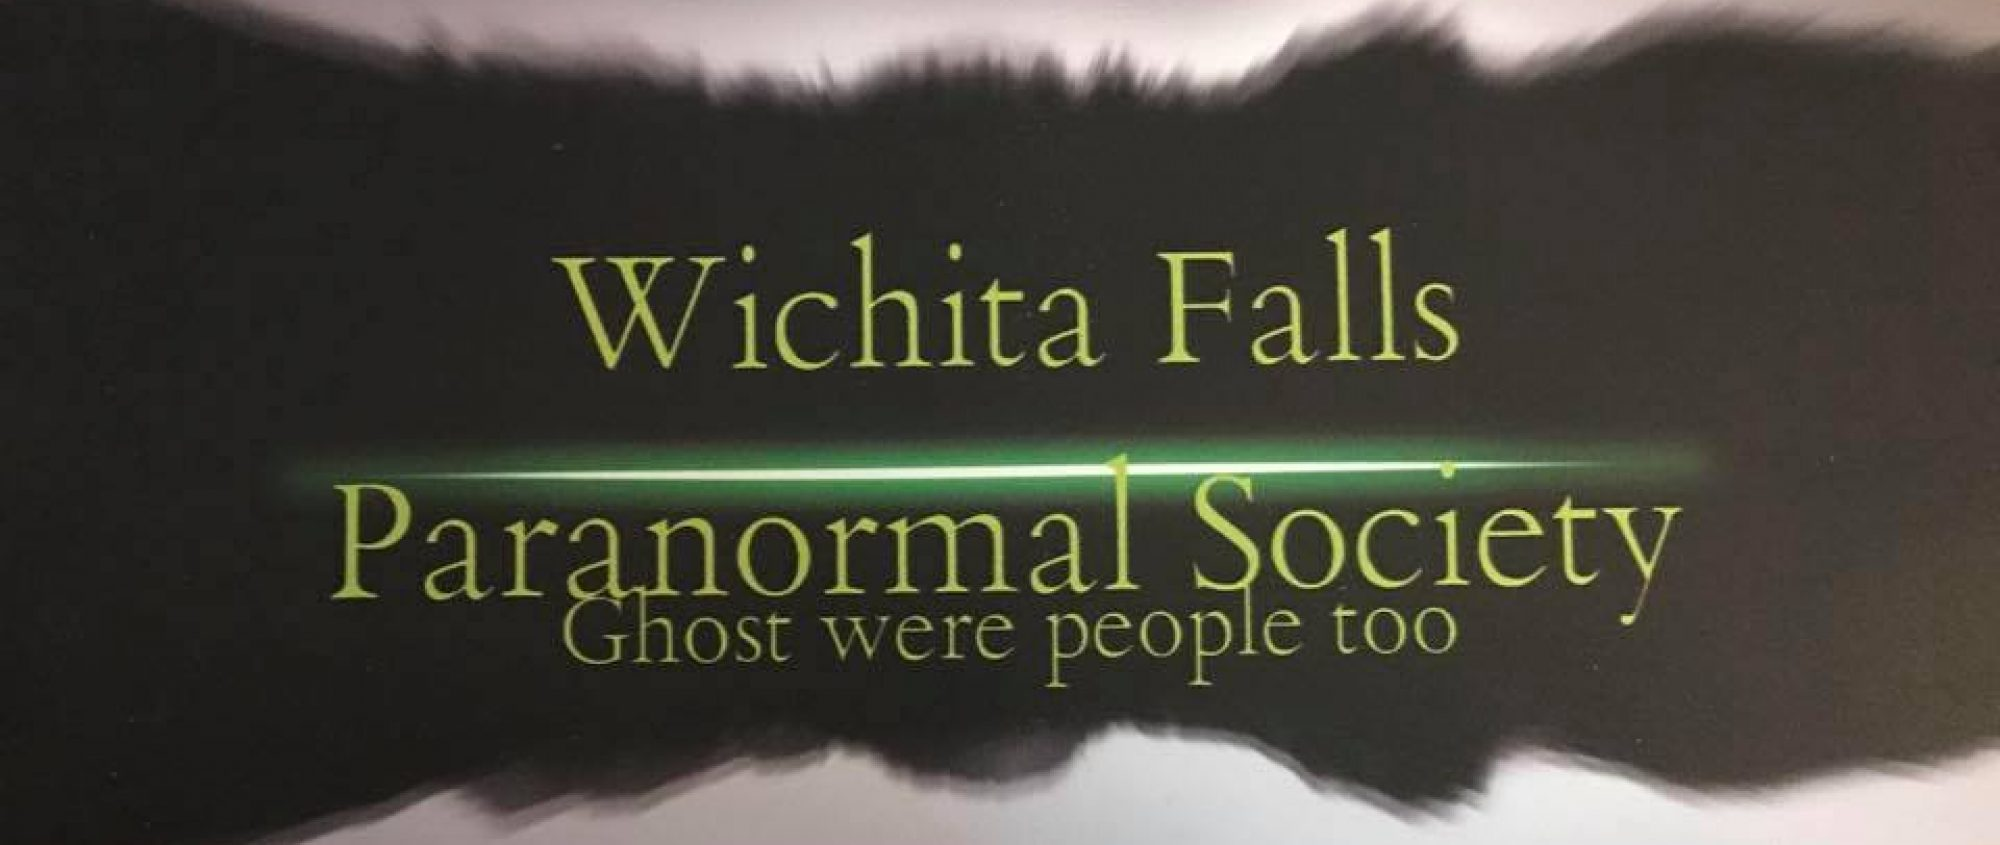 Wichita Falls Paranormal Society